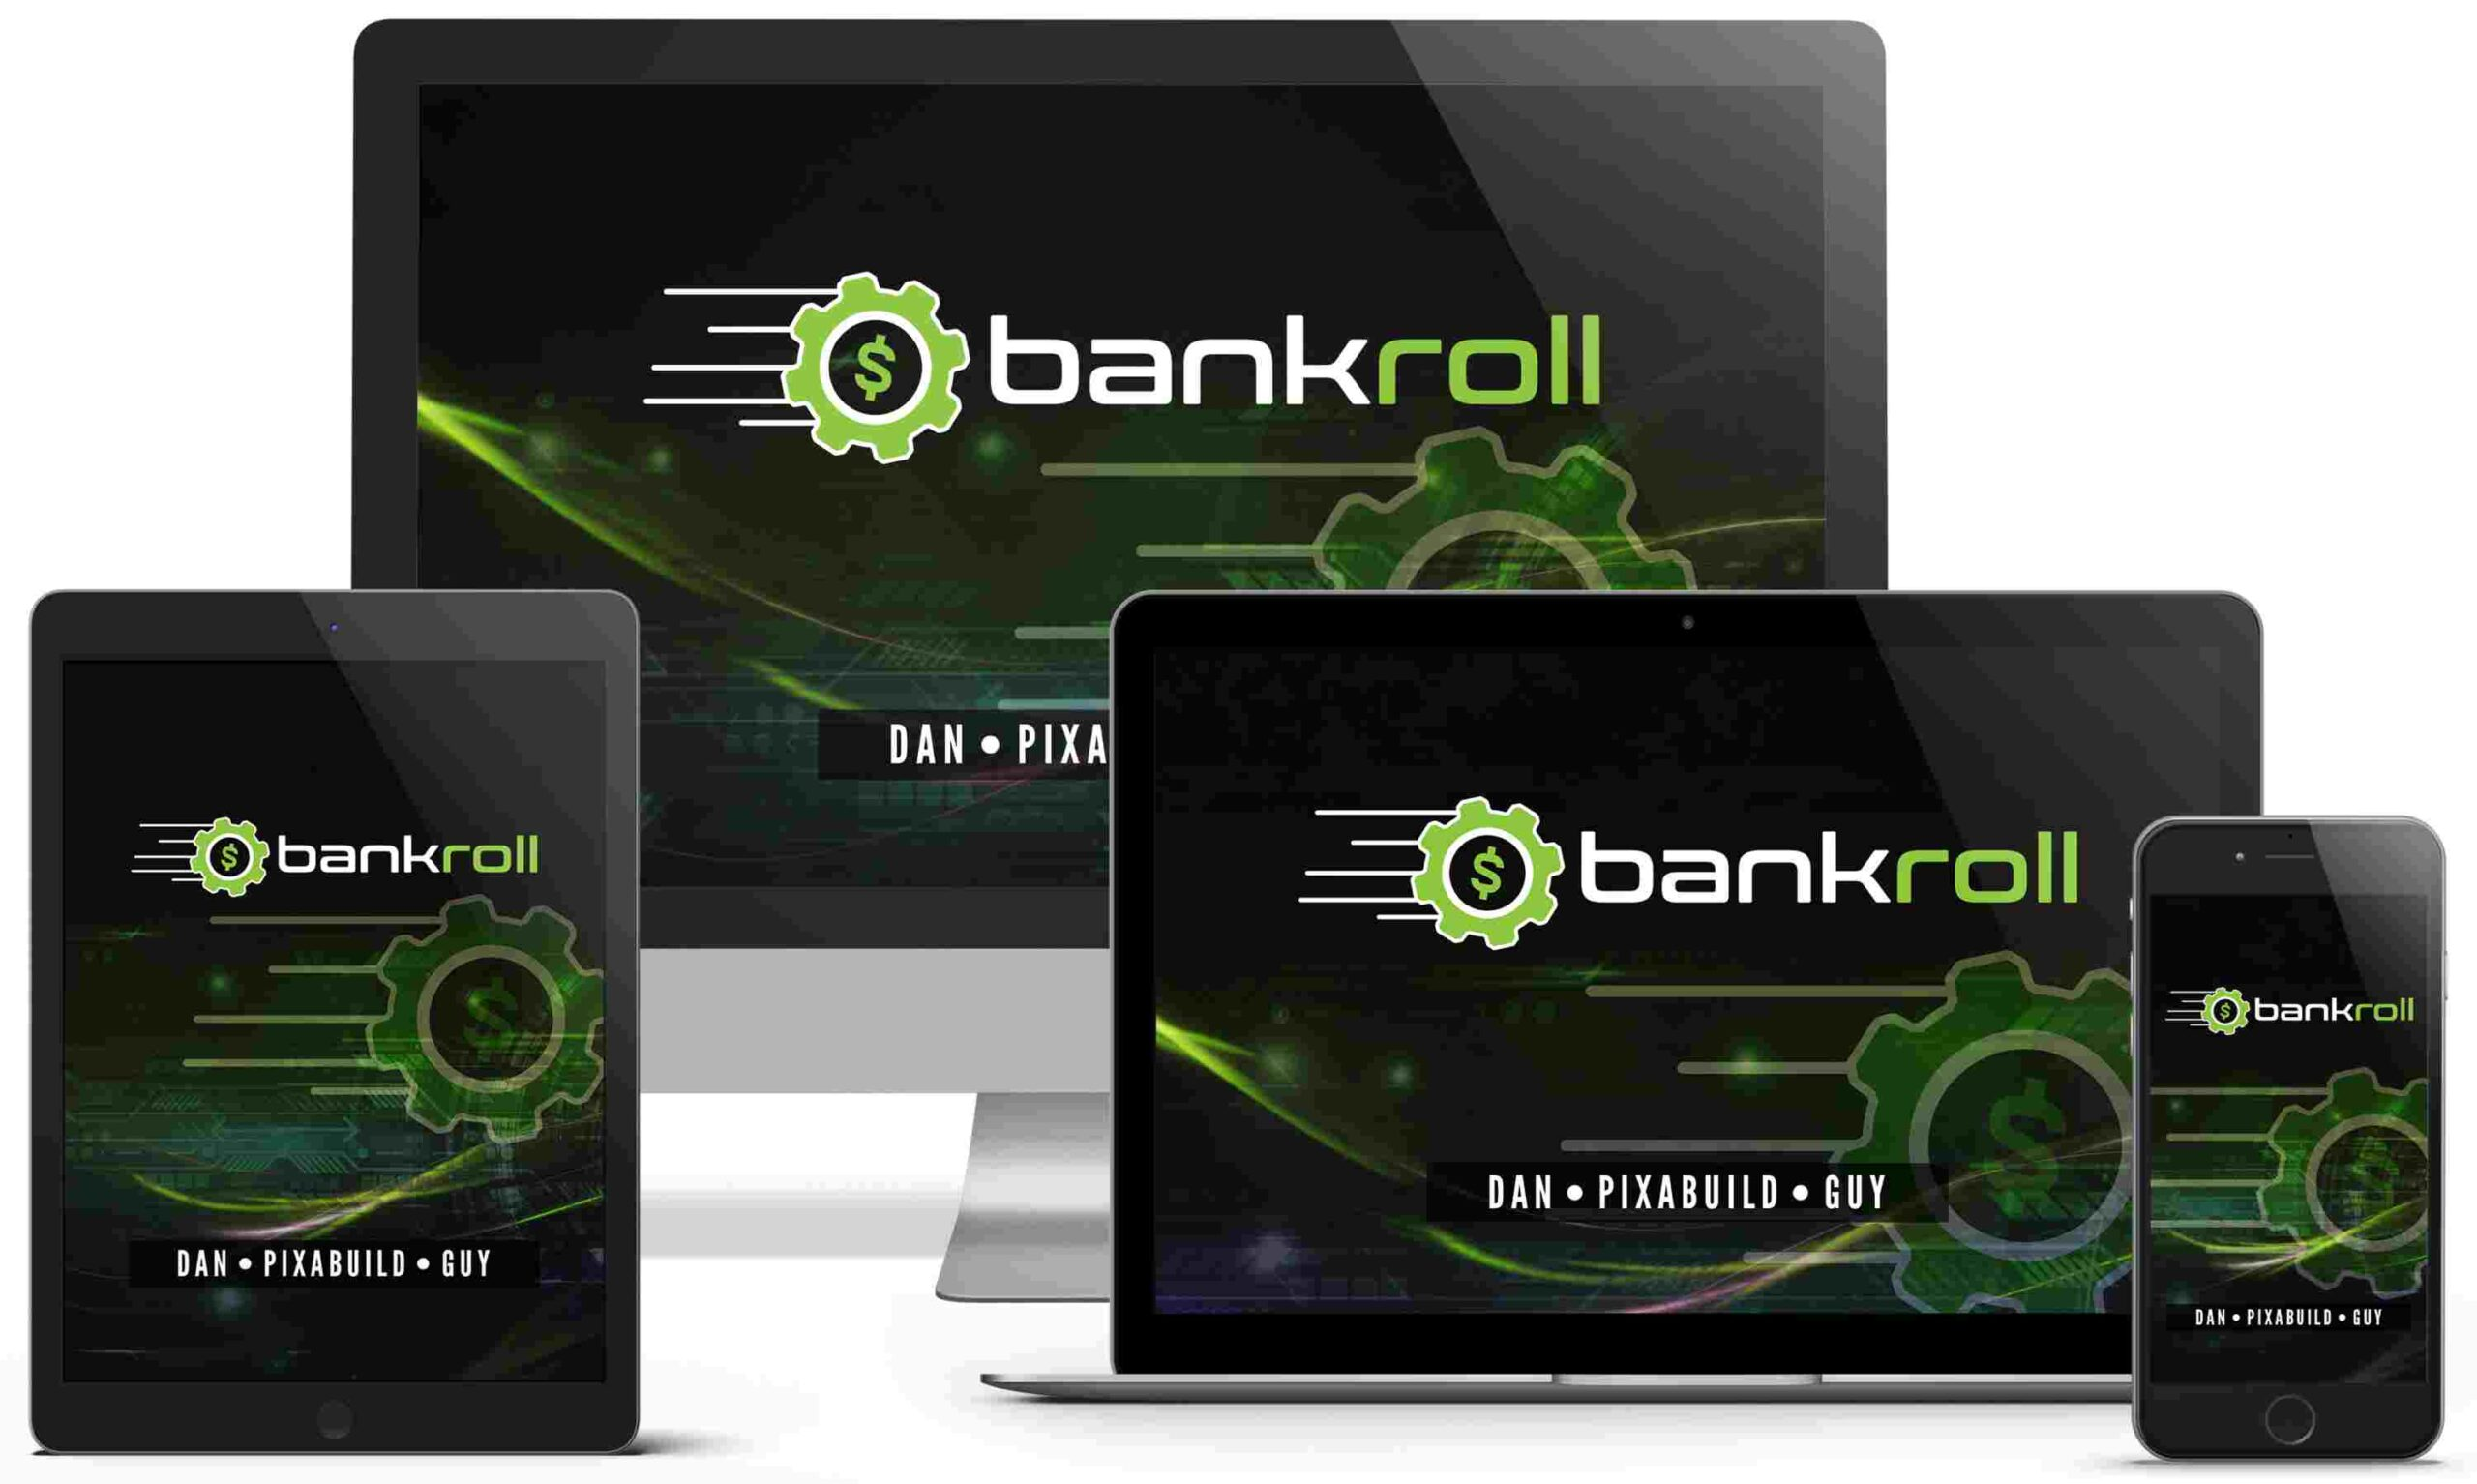 Bank roll cover image